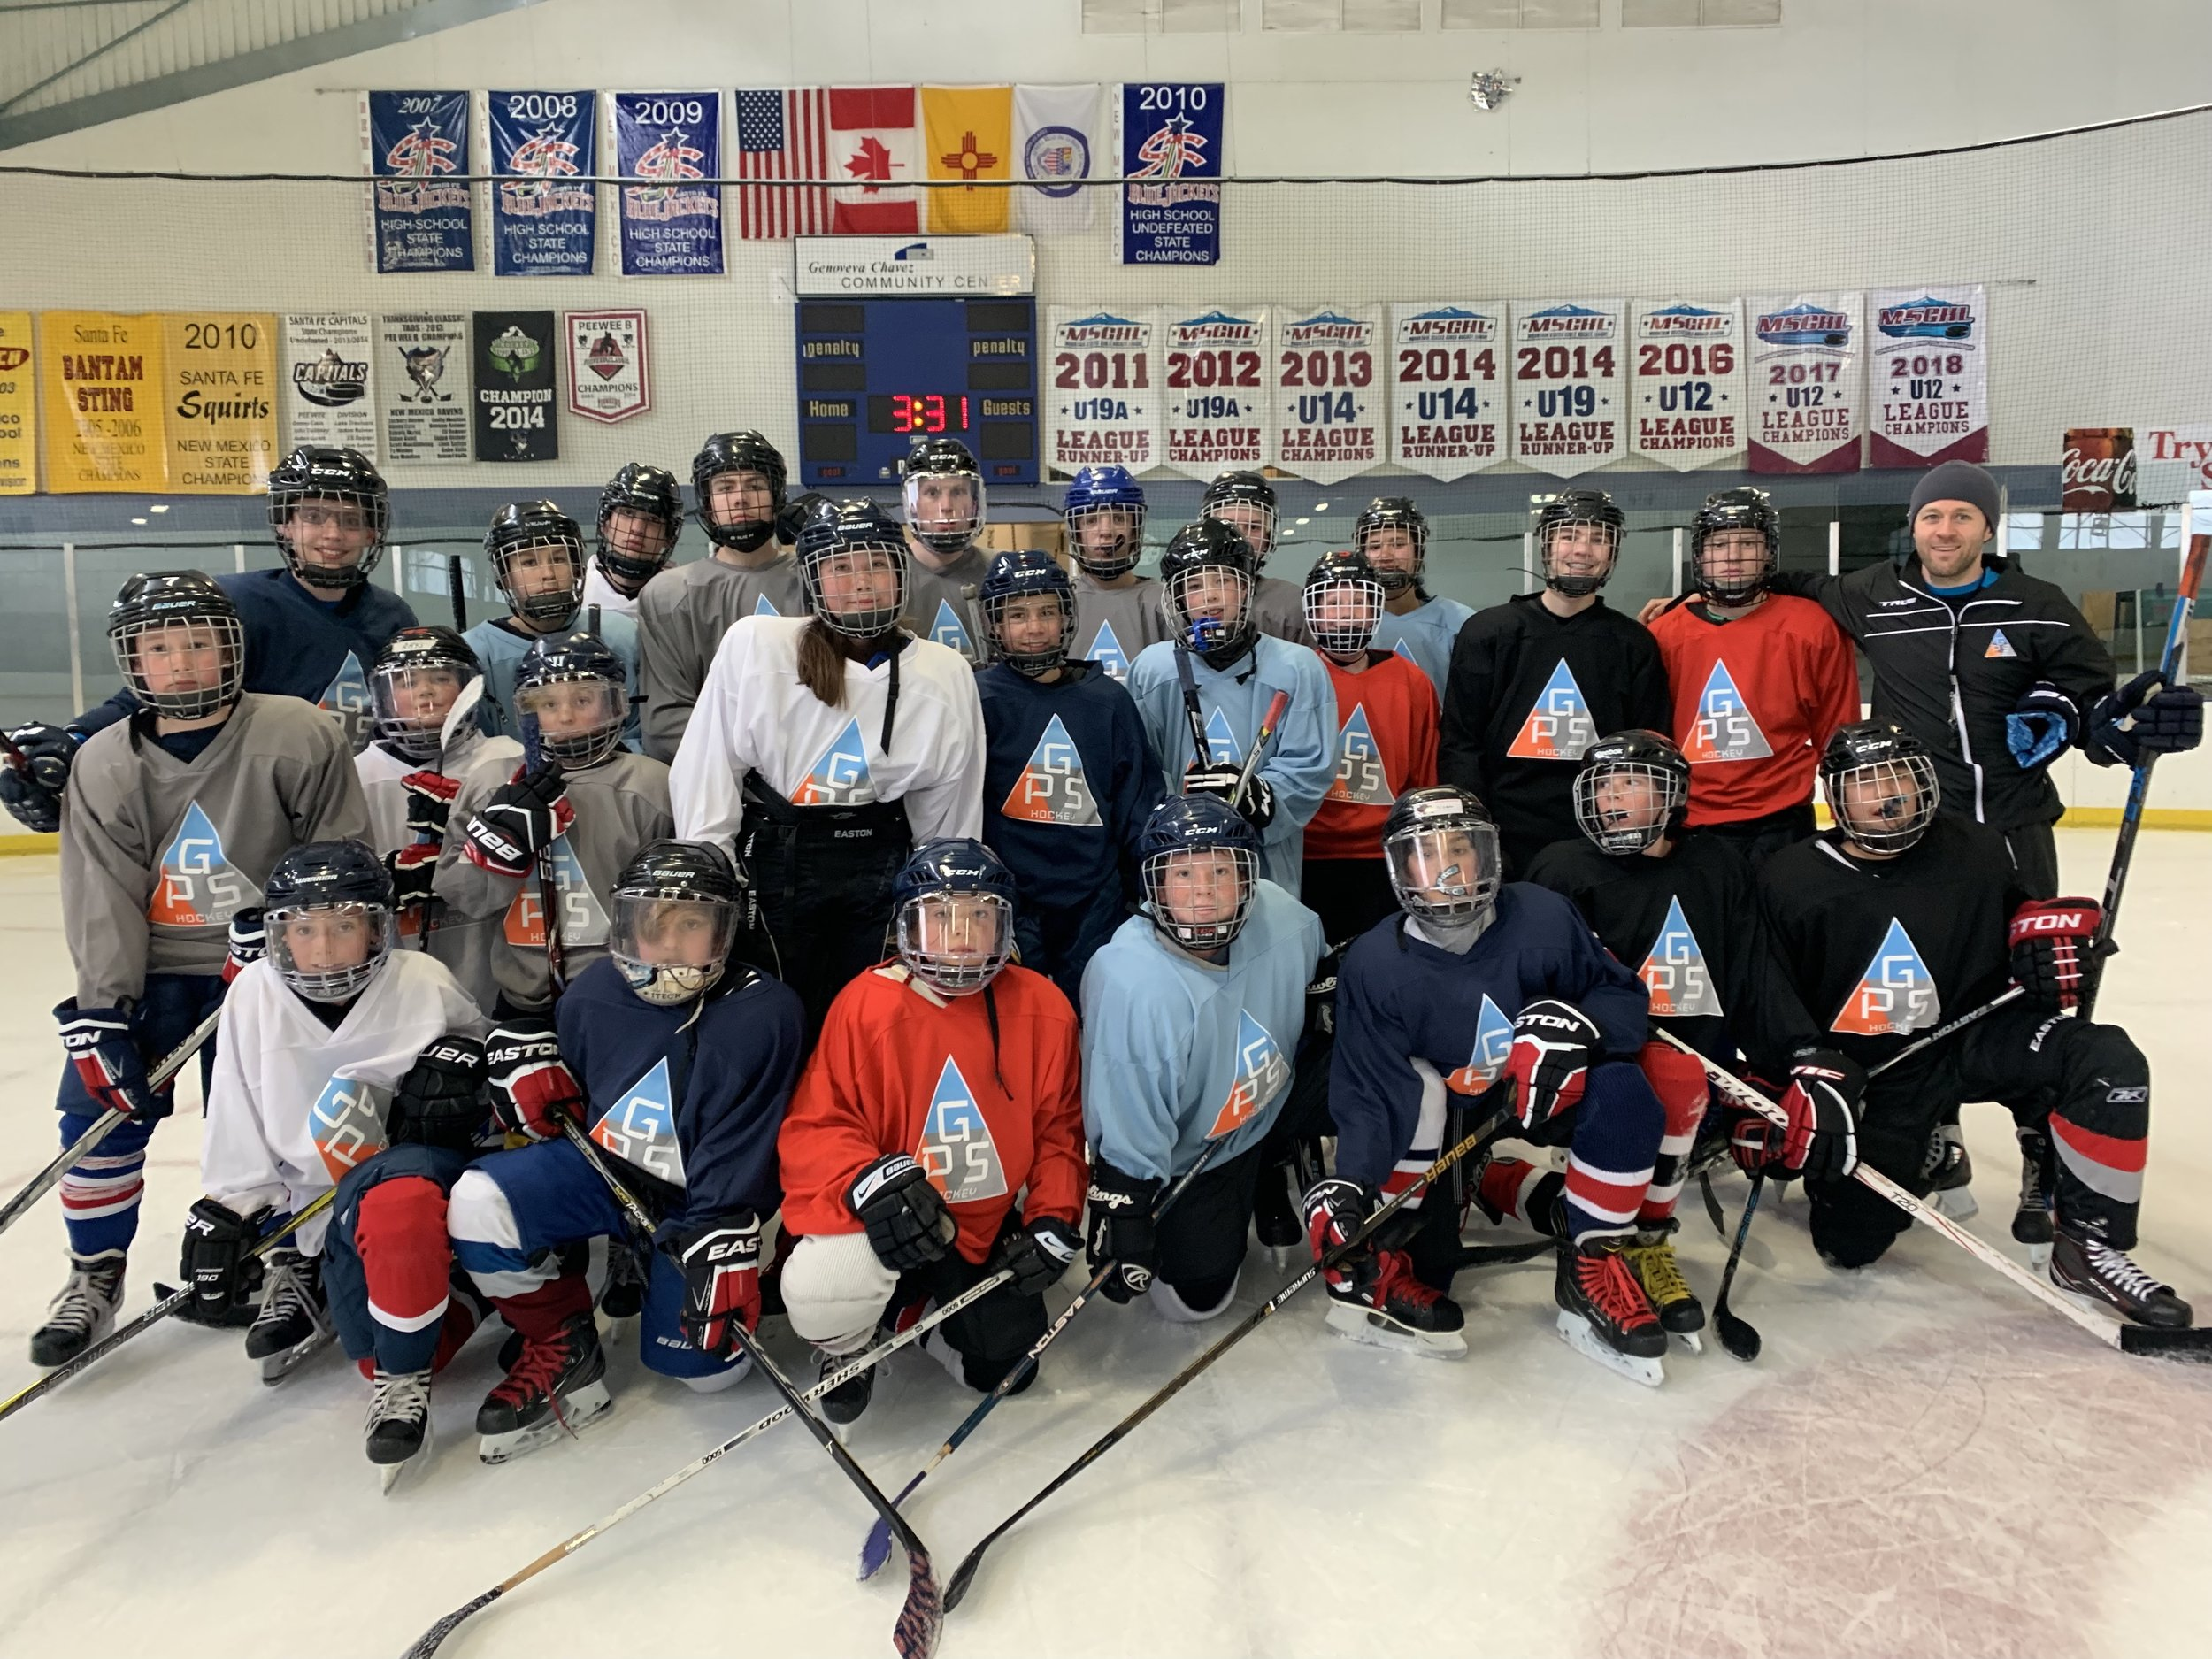 Grunnah Power Skating + Hockey School - Archive